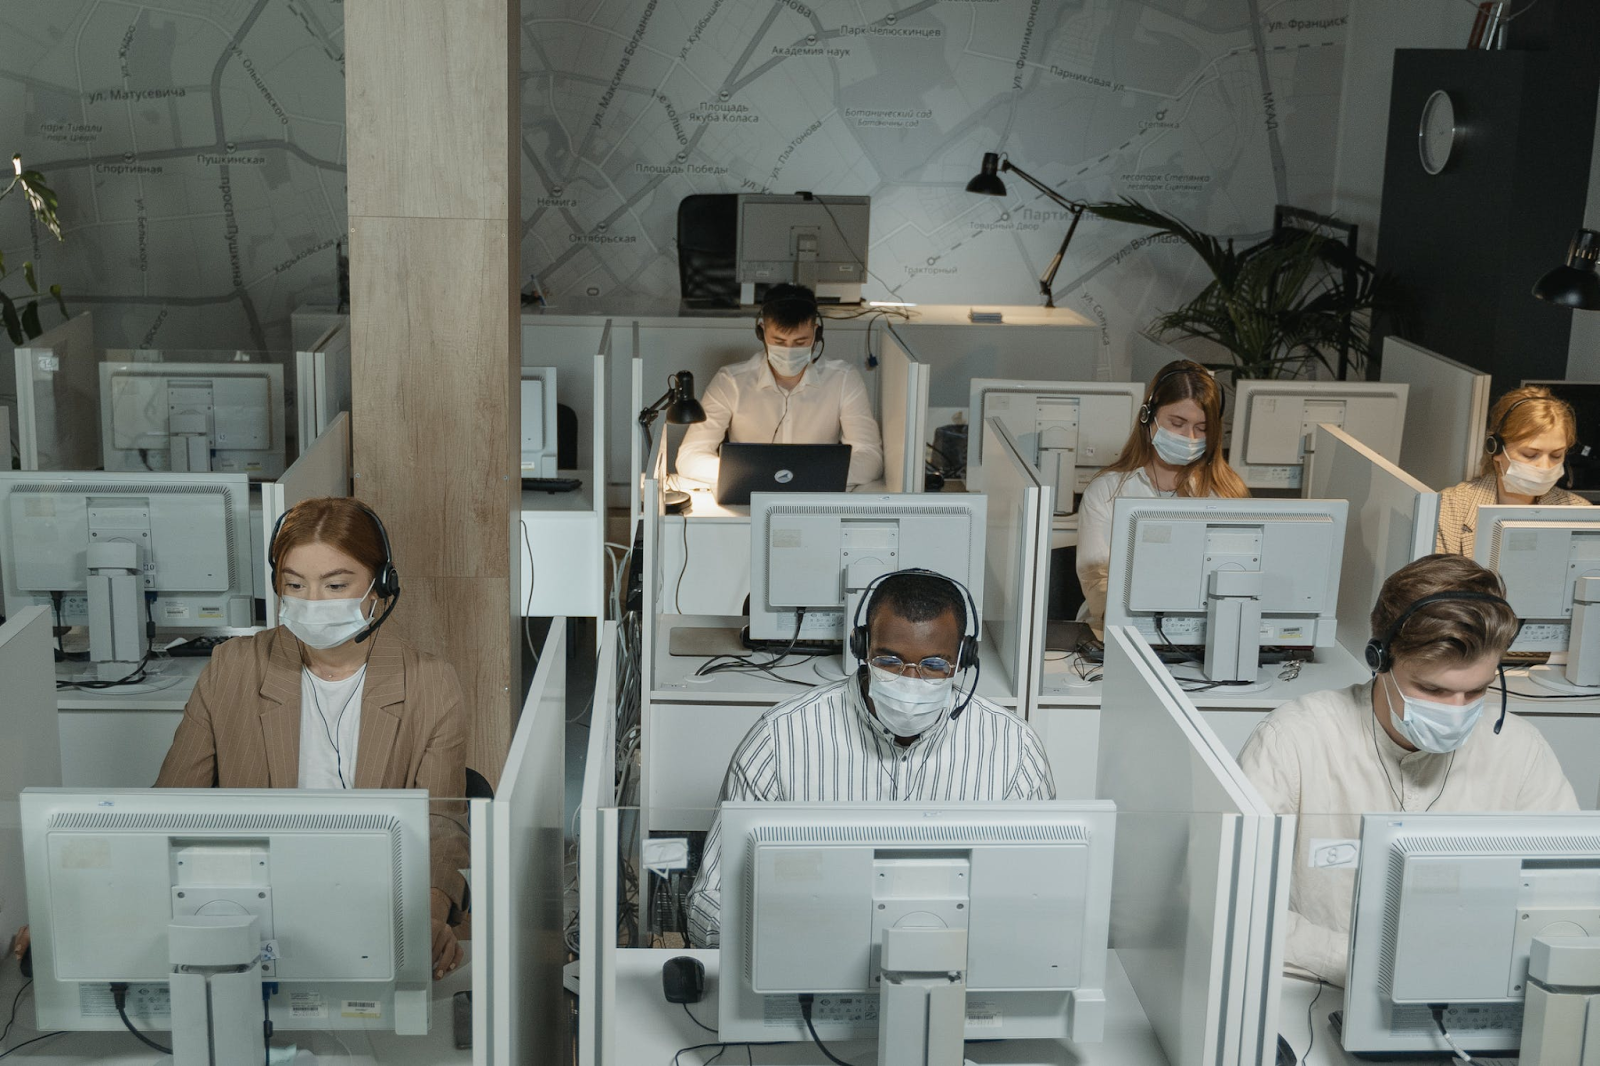 An image of a muted-colored office space full of identical computers in identical cubicles. All of the people sitting at their desks are wearing masks.